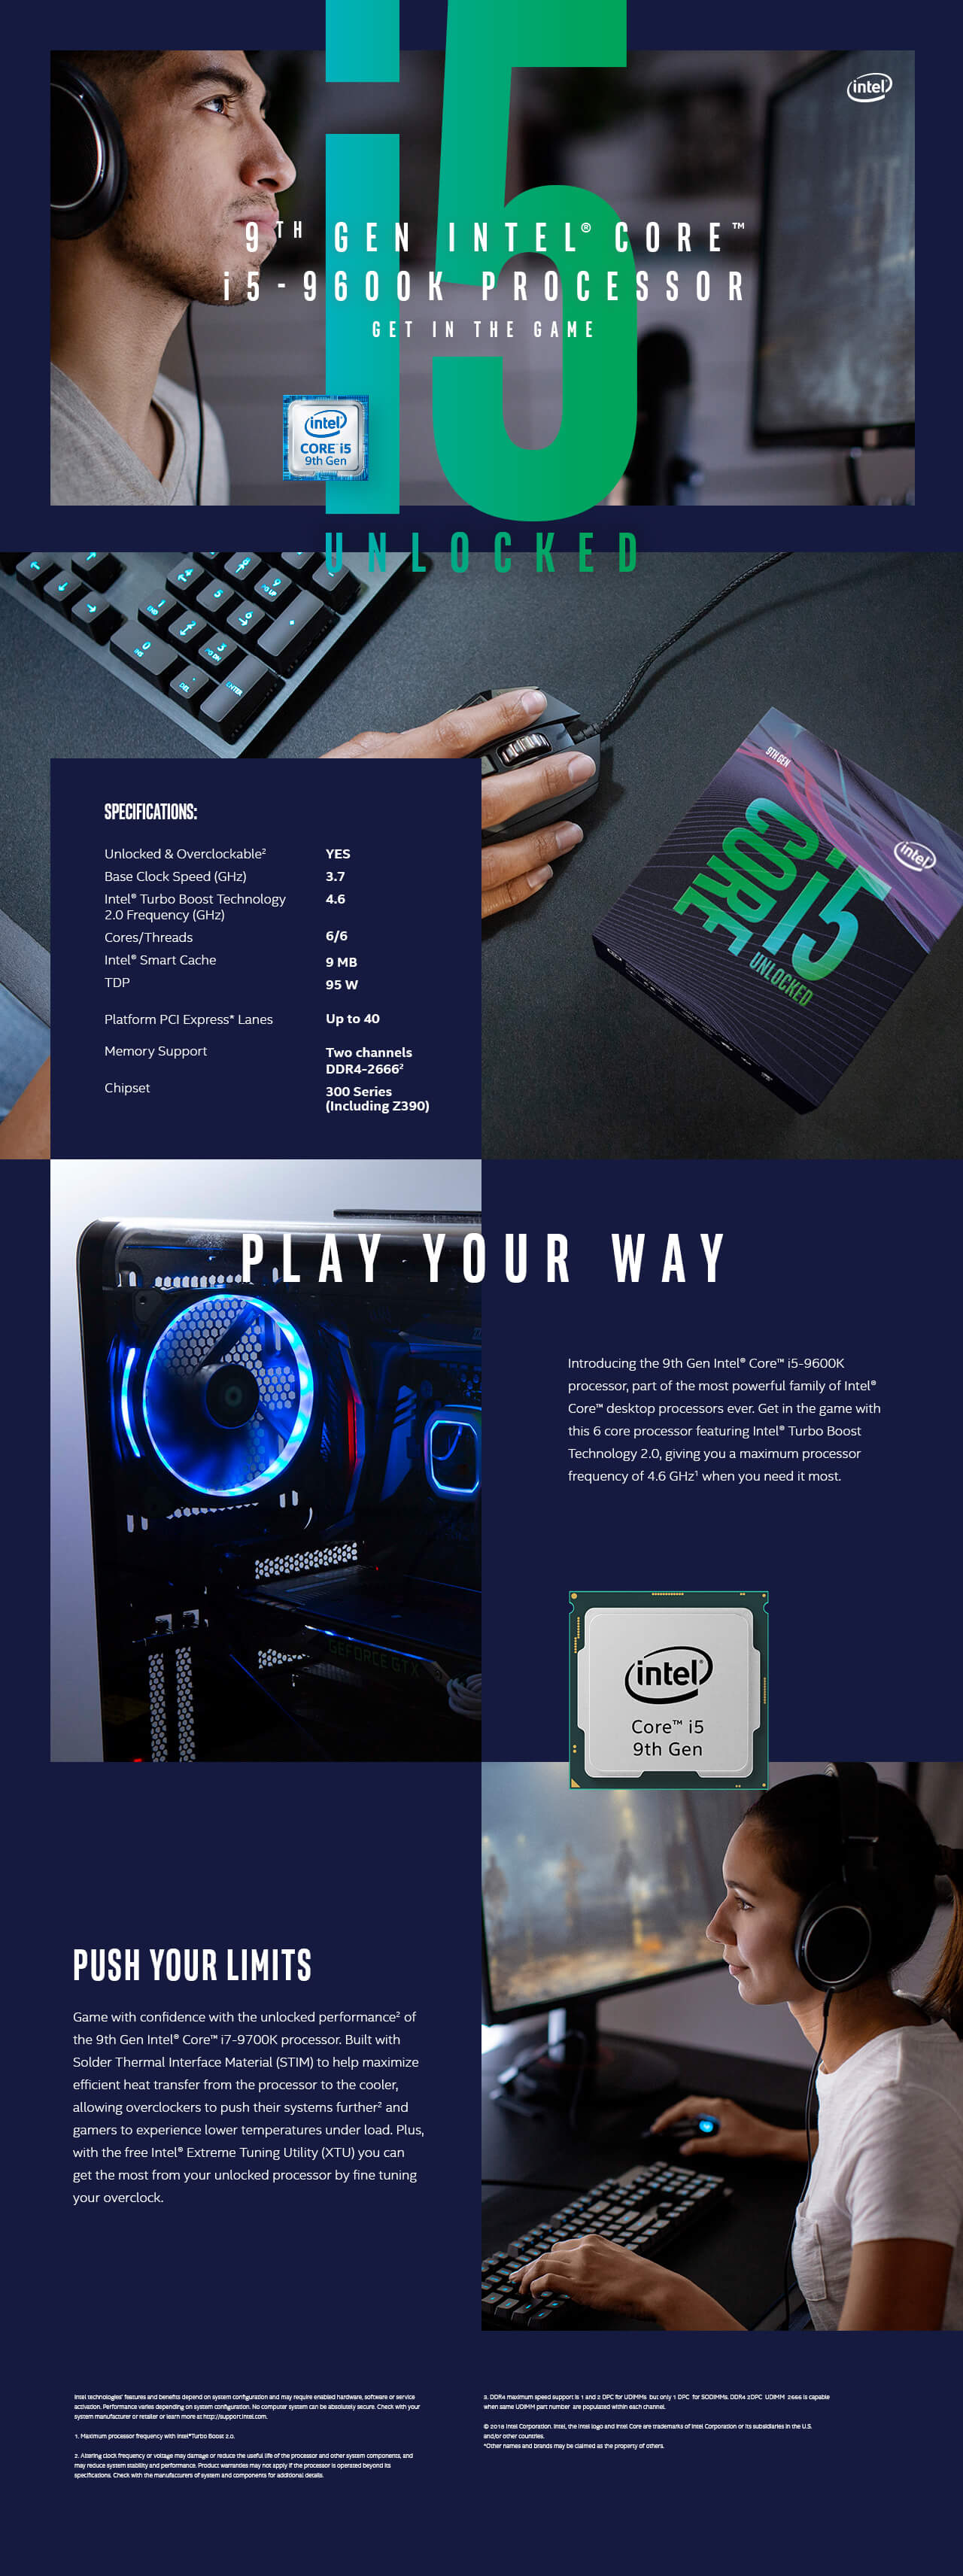 Intel® Core™ I5-9600K Desktop Processor